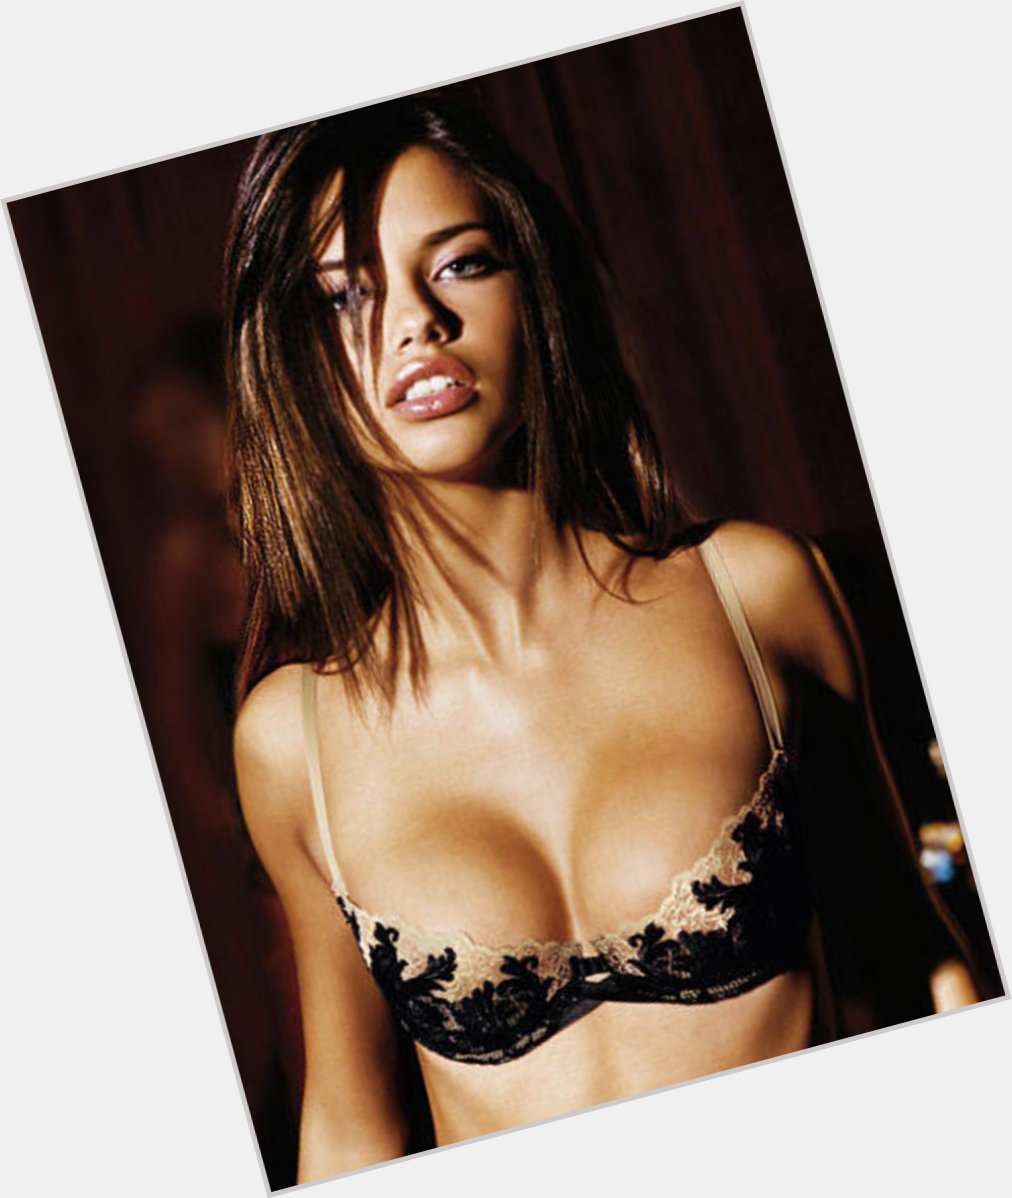 Secret models official site for woman crush wednesday wcw